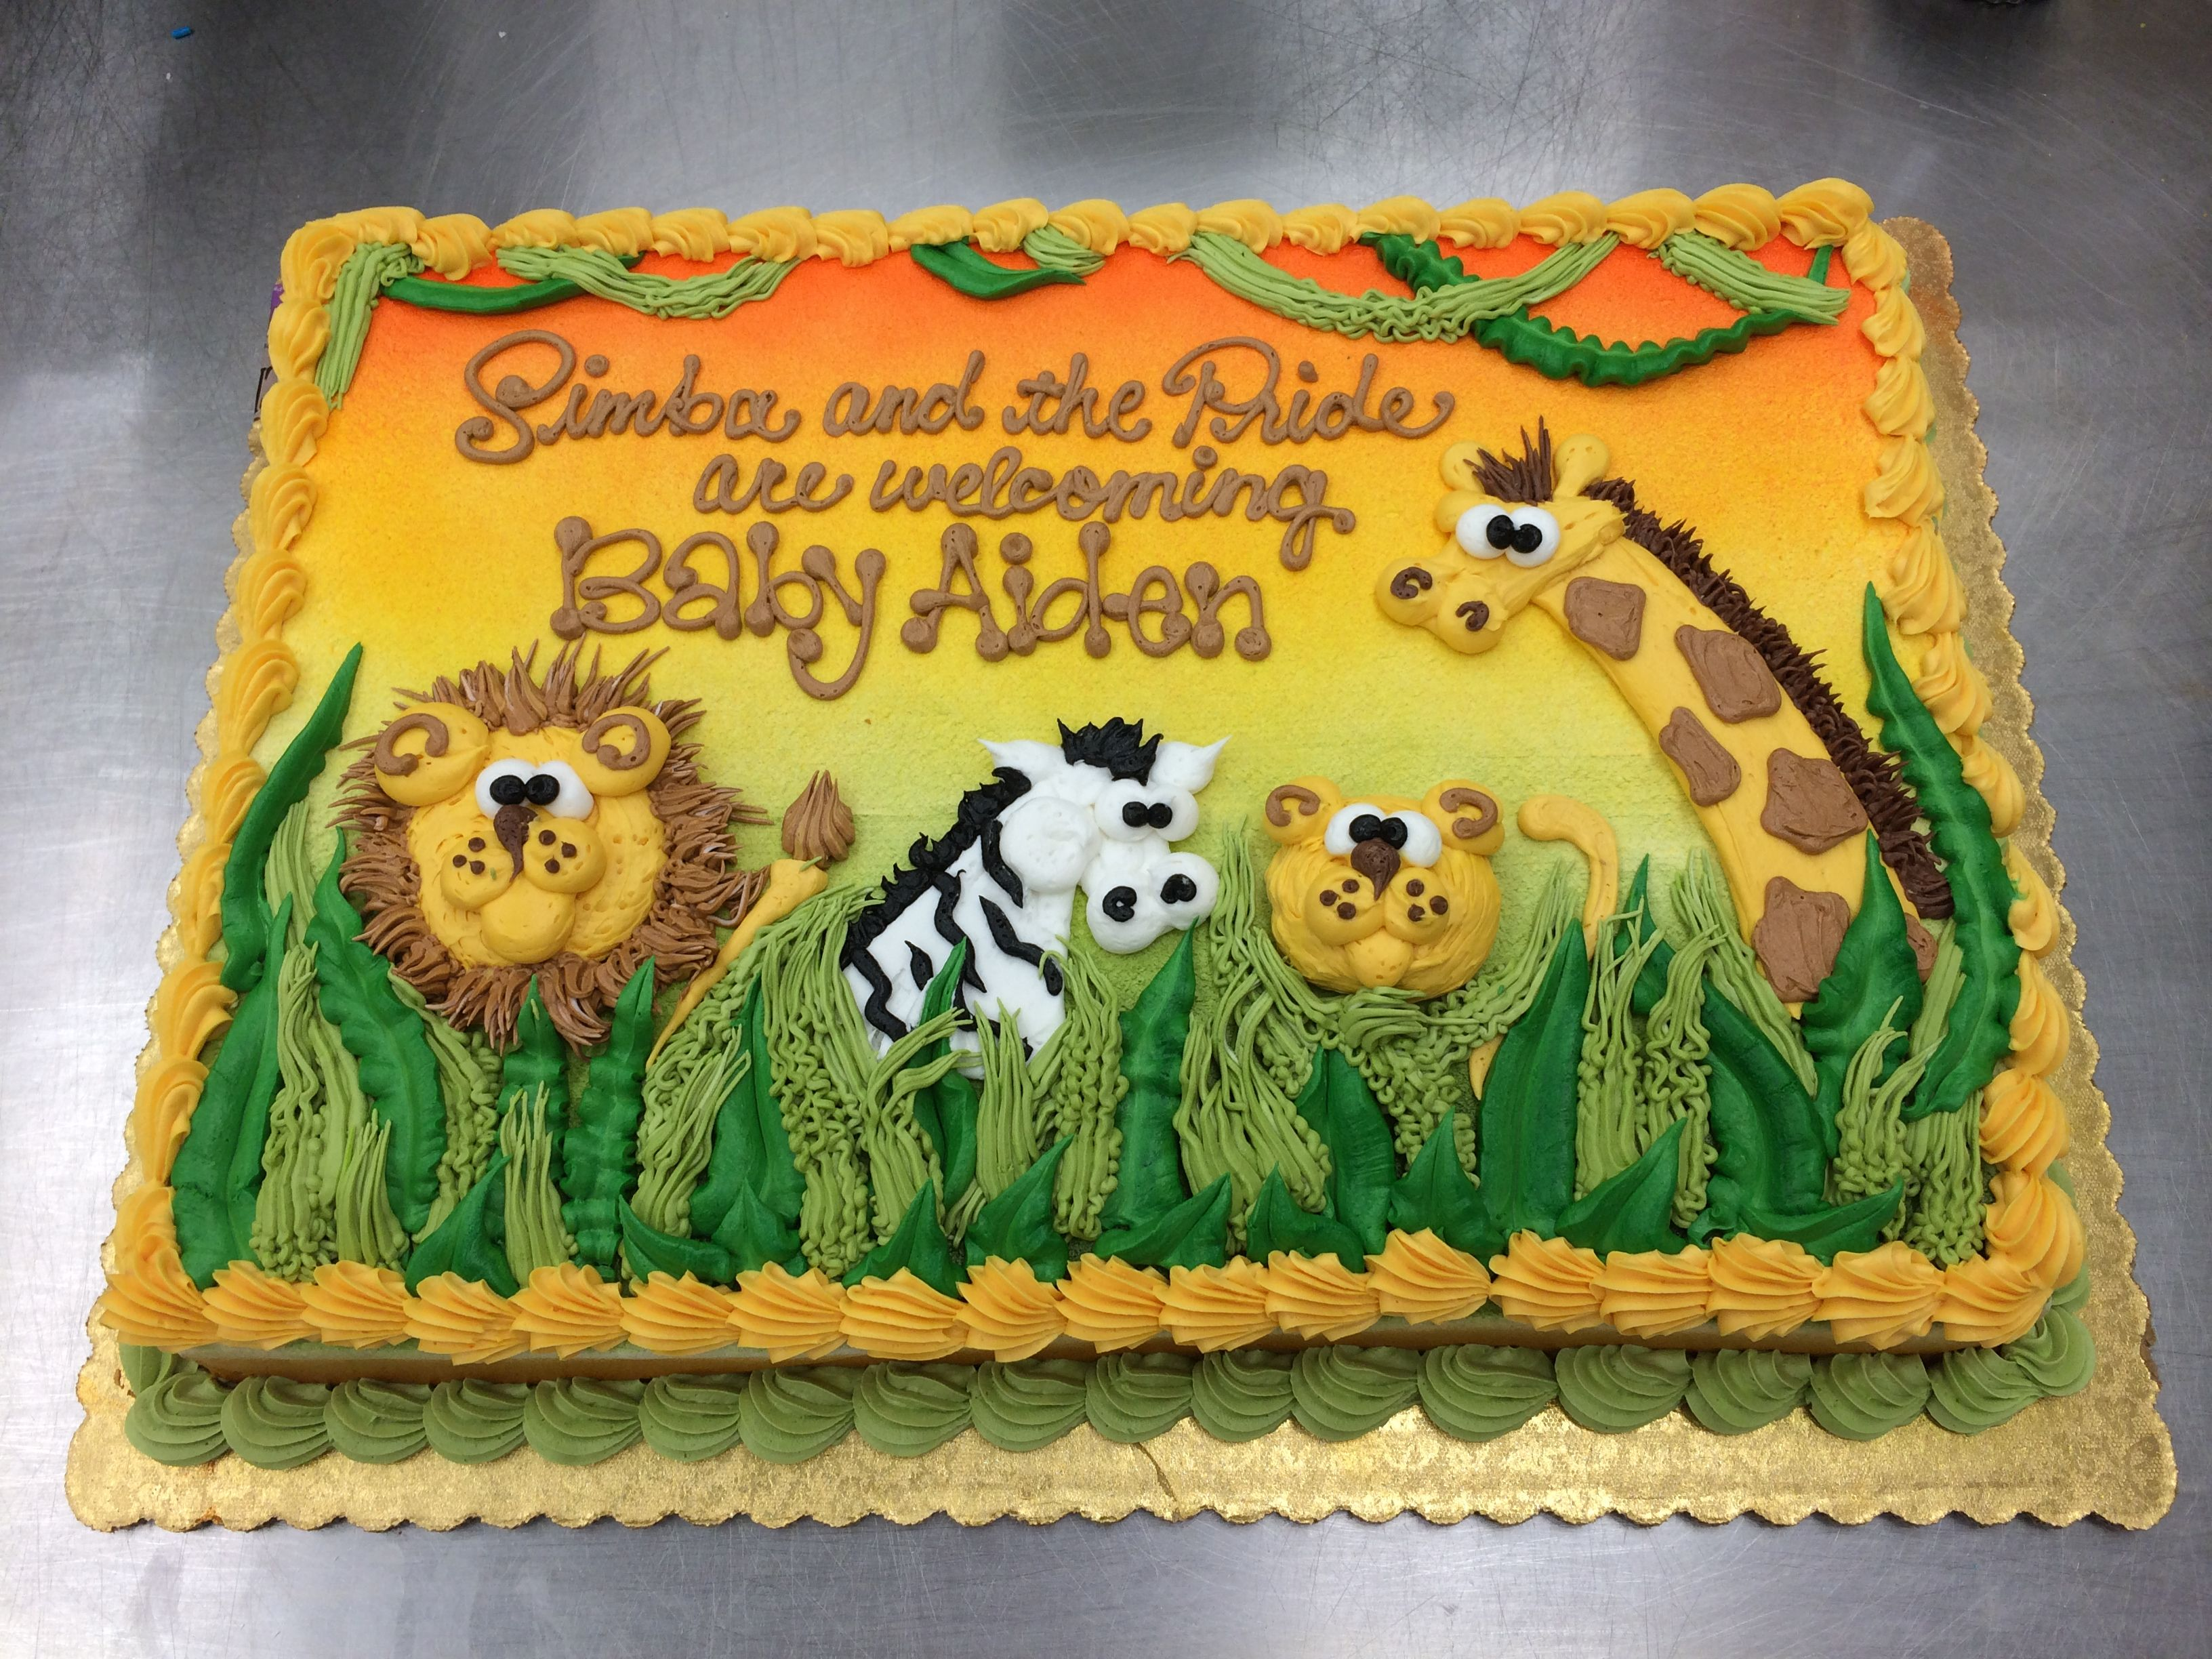 Décoration Safari Anniversaire Jungle Safari Cake By Stephanie Dillon Ls1 Hy Vee Cake